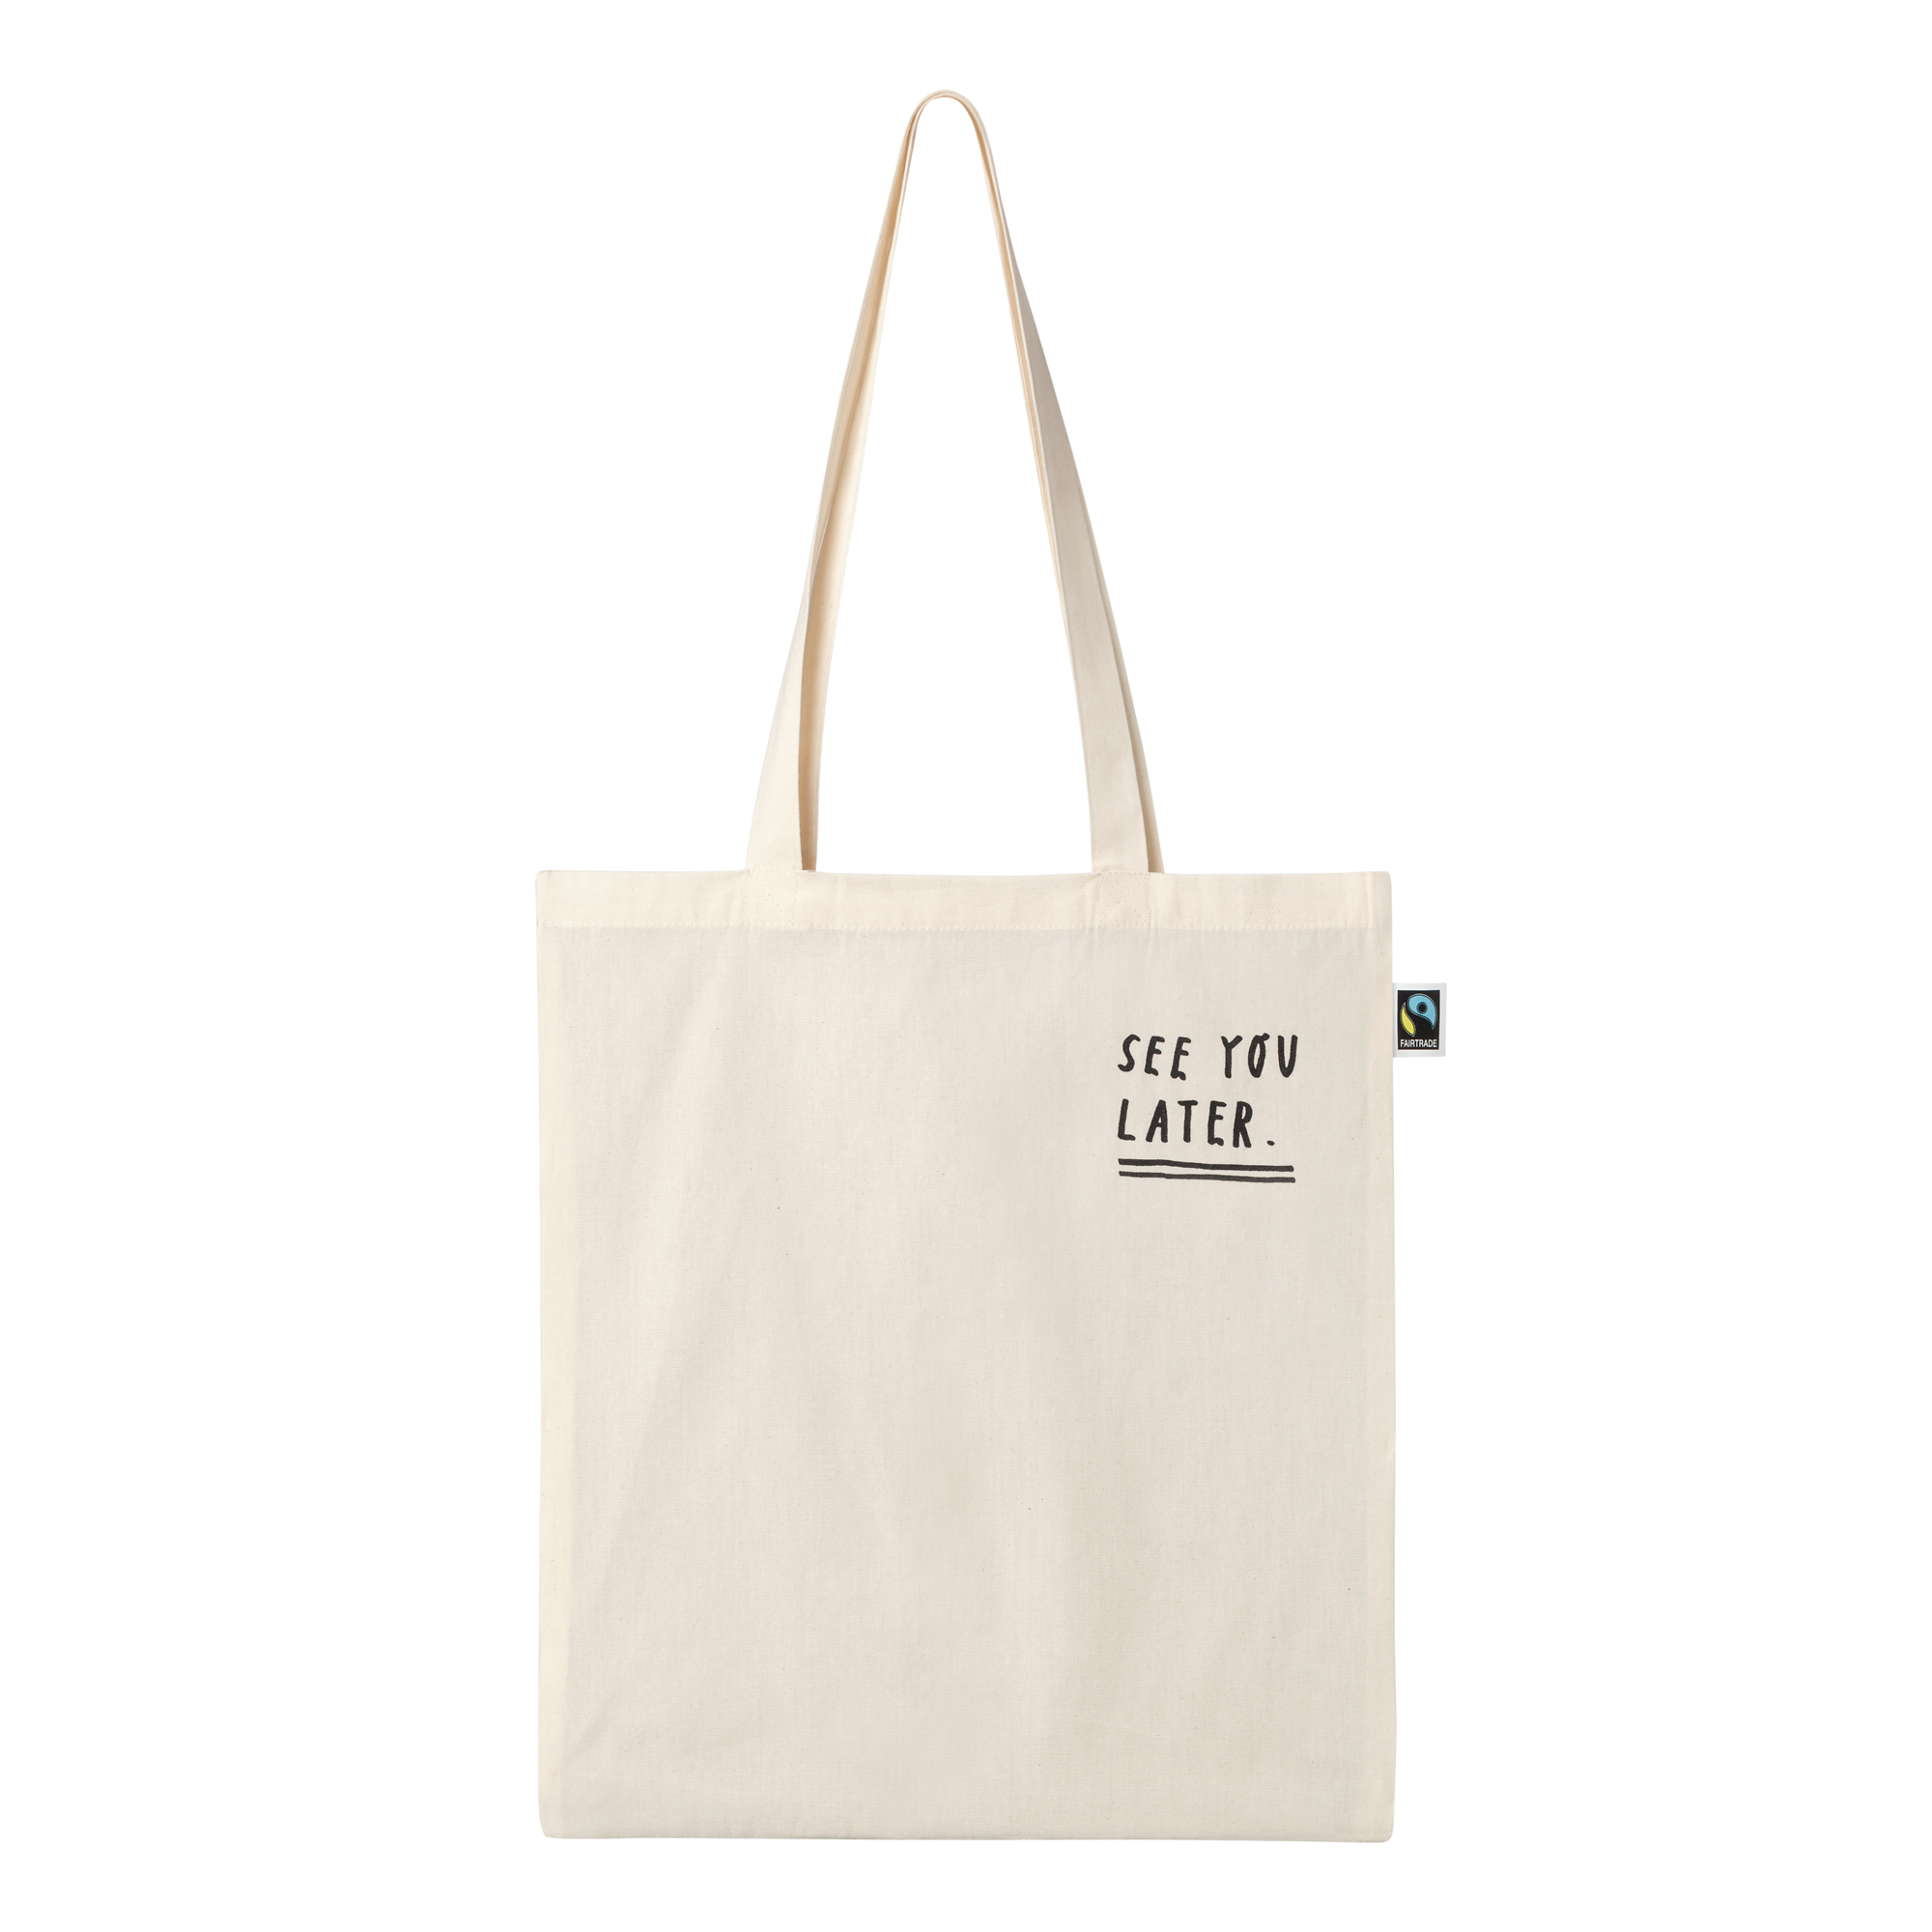 Peter-Phobia-See-You-Later-Tote-Bag-natural-white-_1.jpg